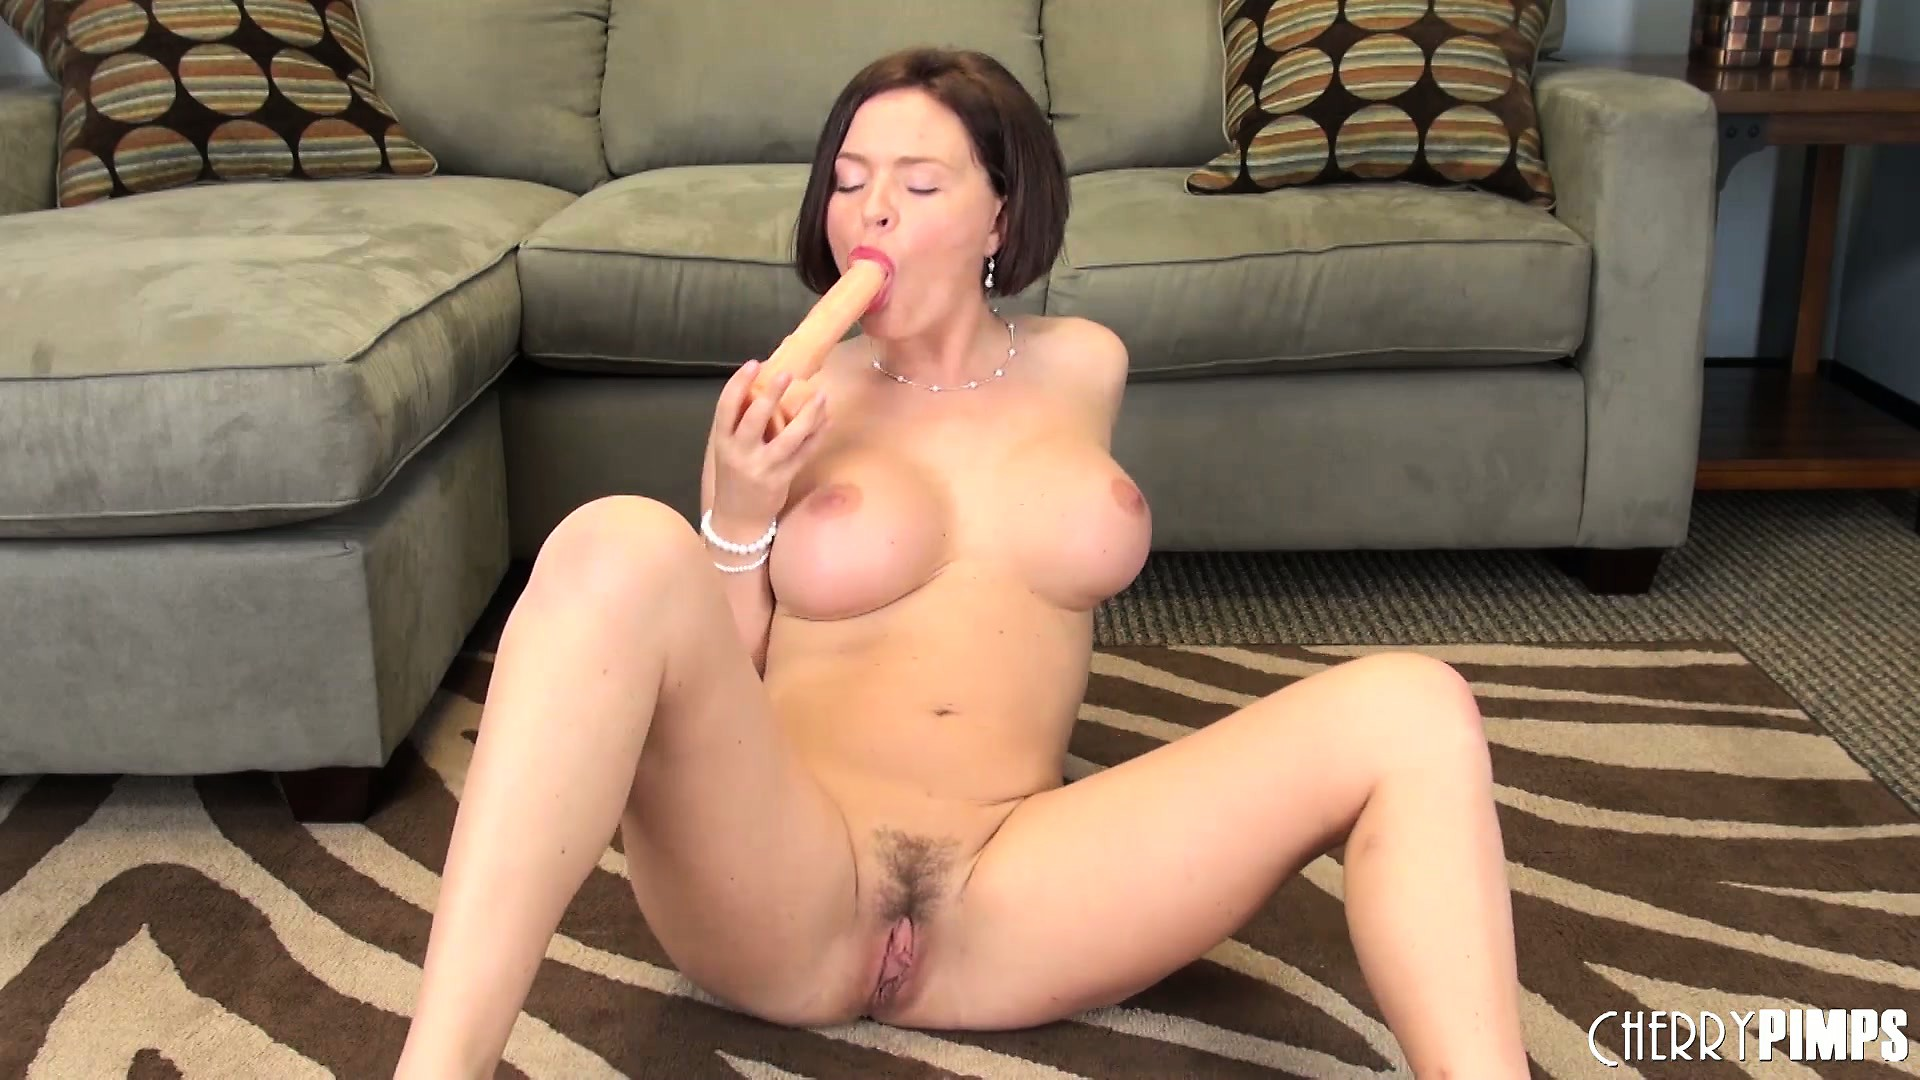 Porno Video of Krissy Lynn Likes To Pose And Tease Then Play With Toys To Please Herself